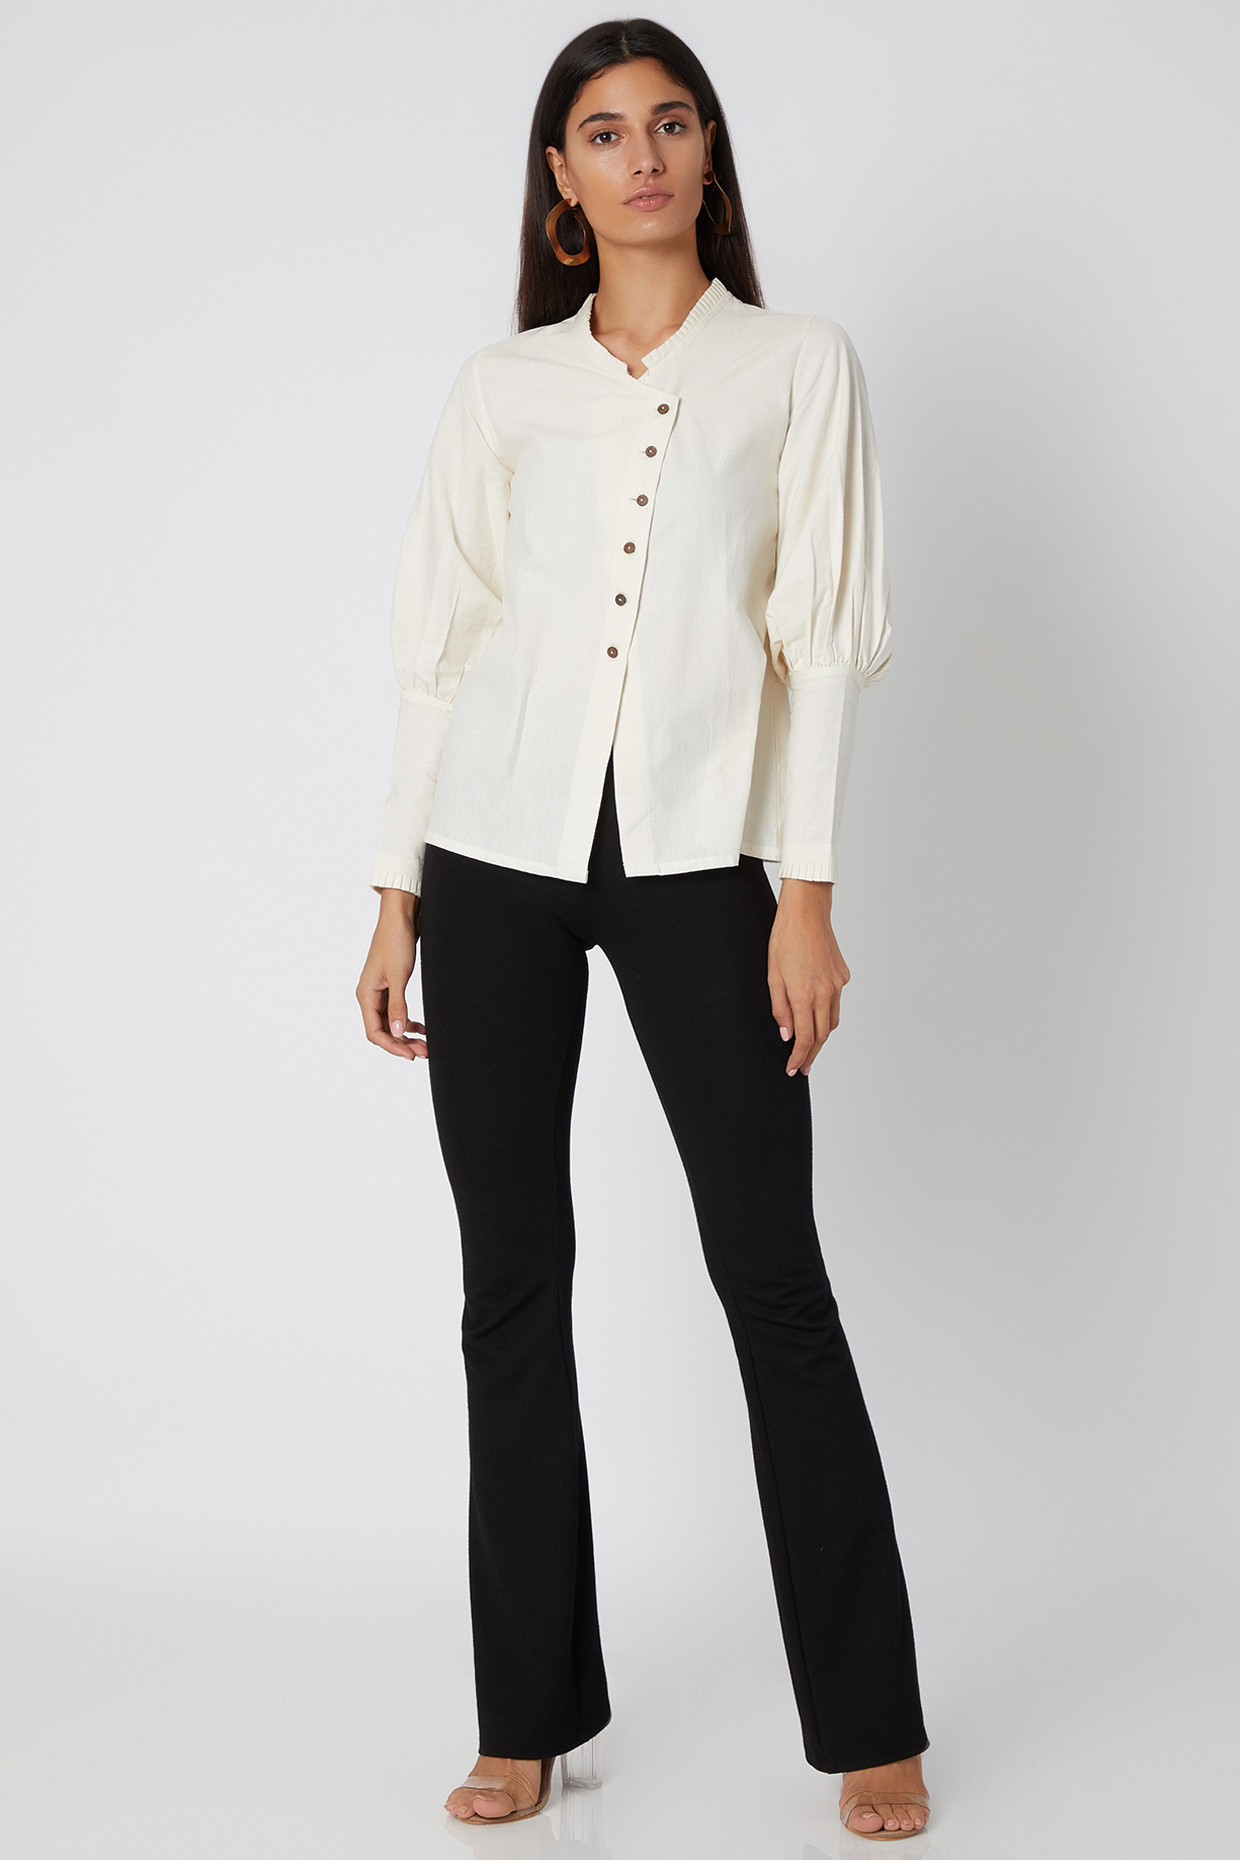 Off White Khadi Cotton Shirt With Victorian Lantern Sleeves by Avadh